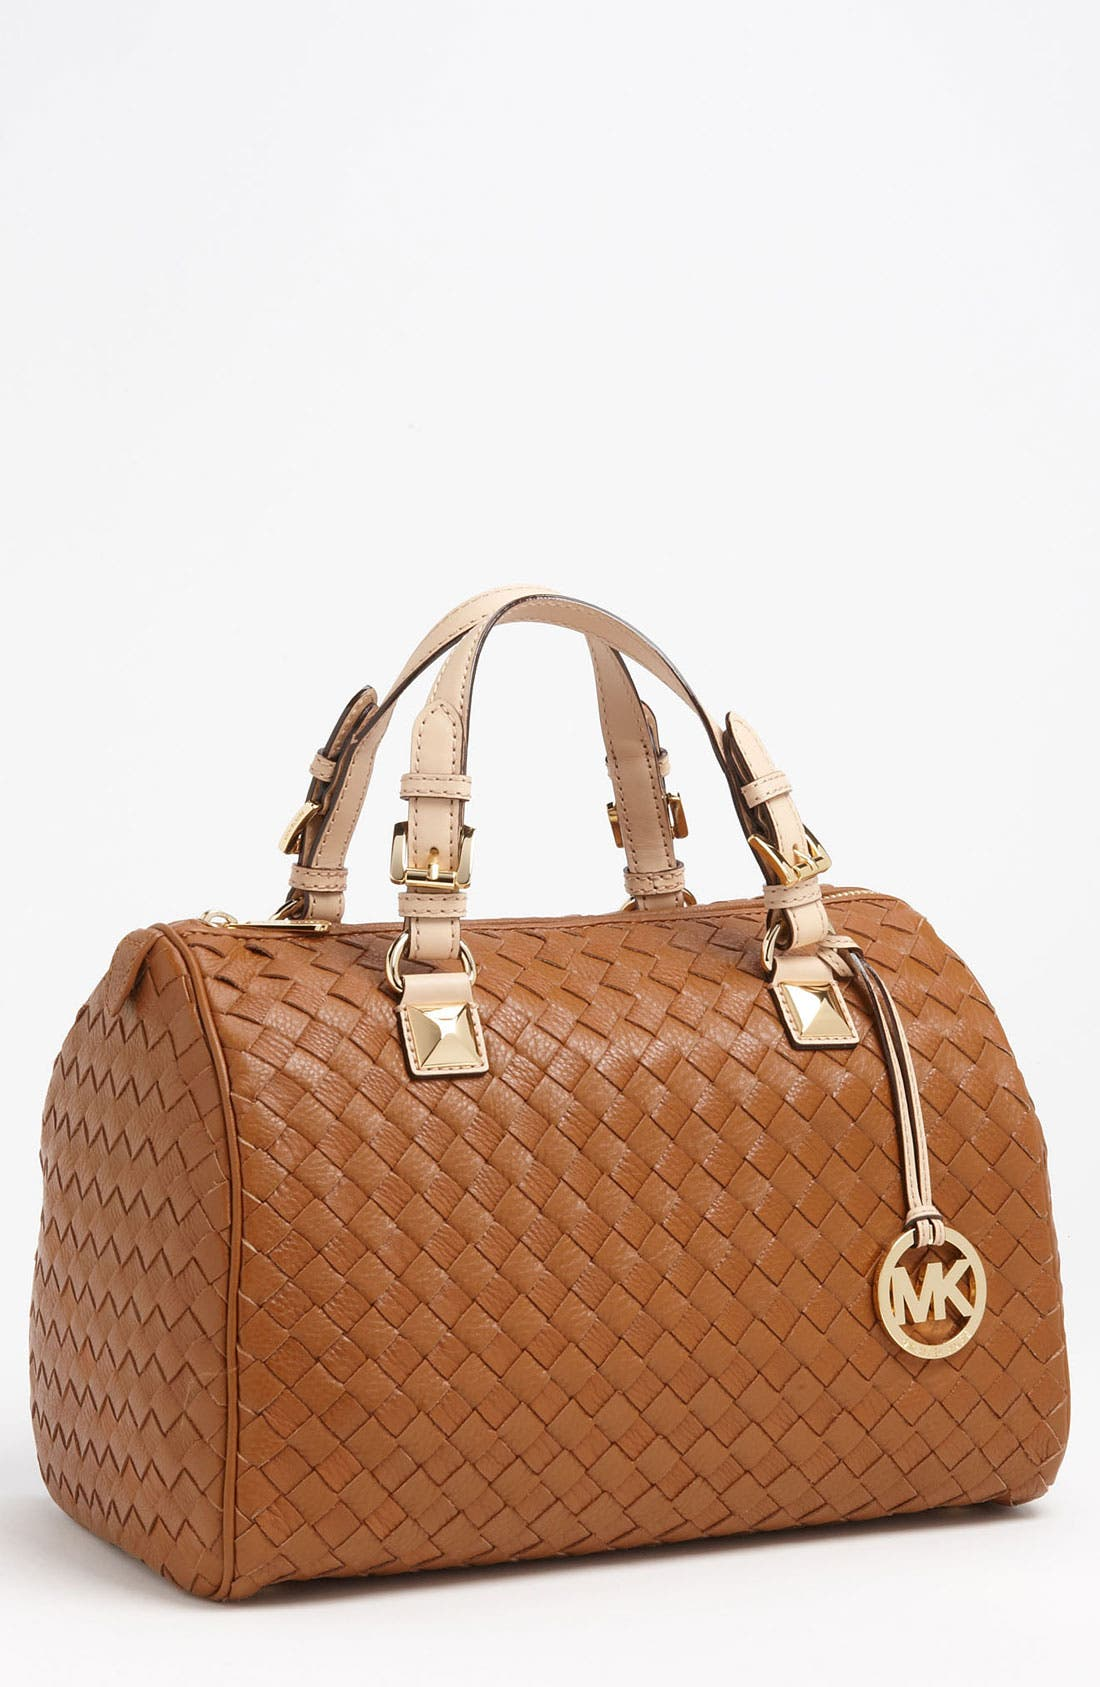 Alternate Image 1 Selected - MICHAEL Michael Kors 'Grayson - Large' Leather Satchel